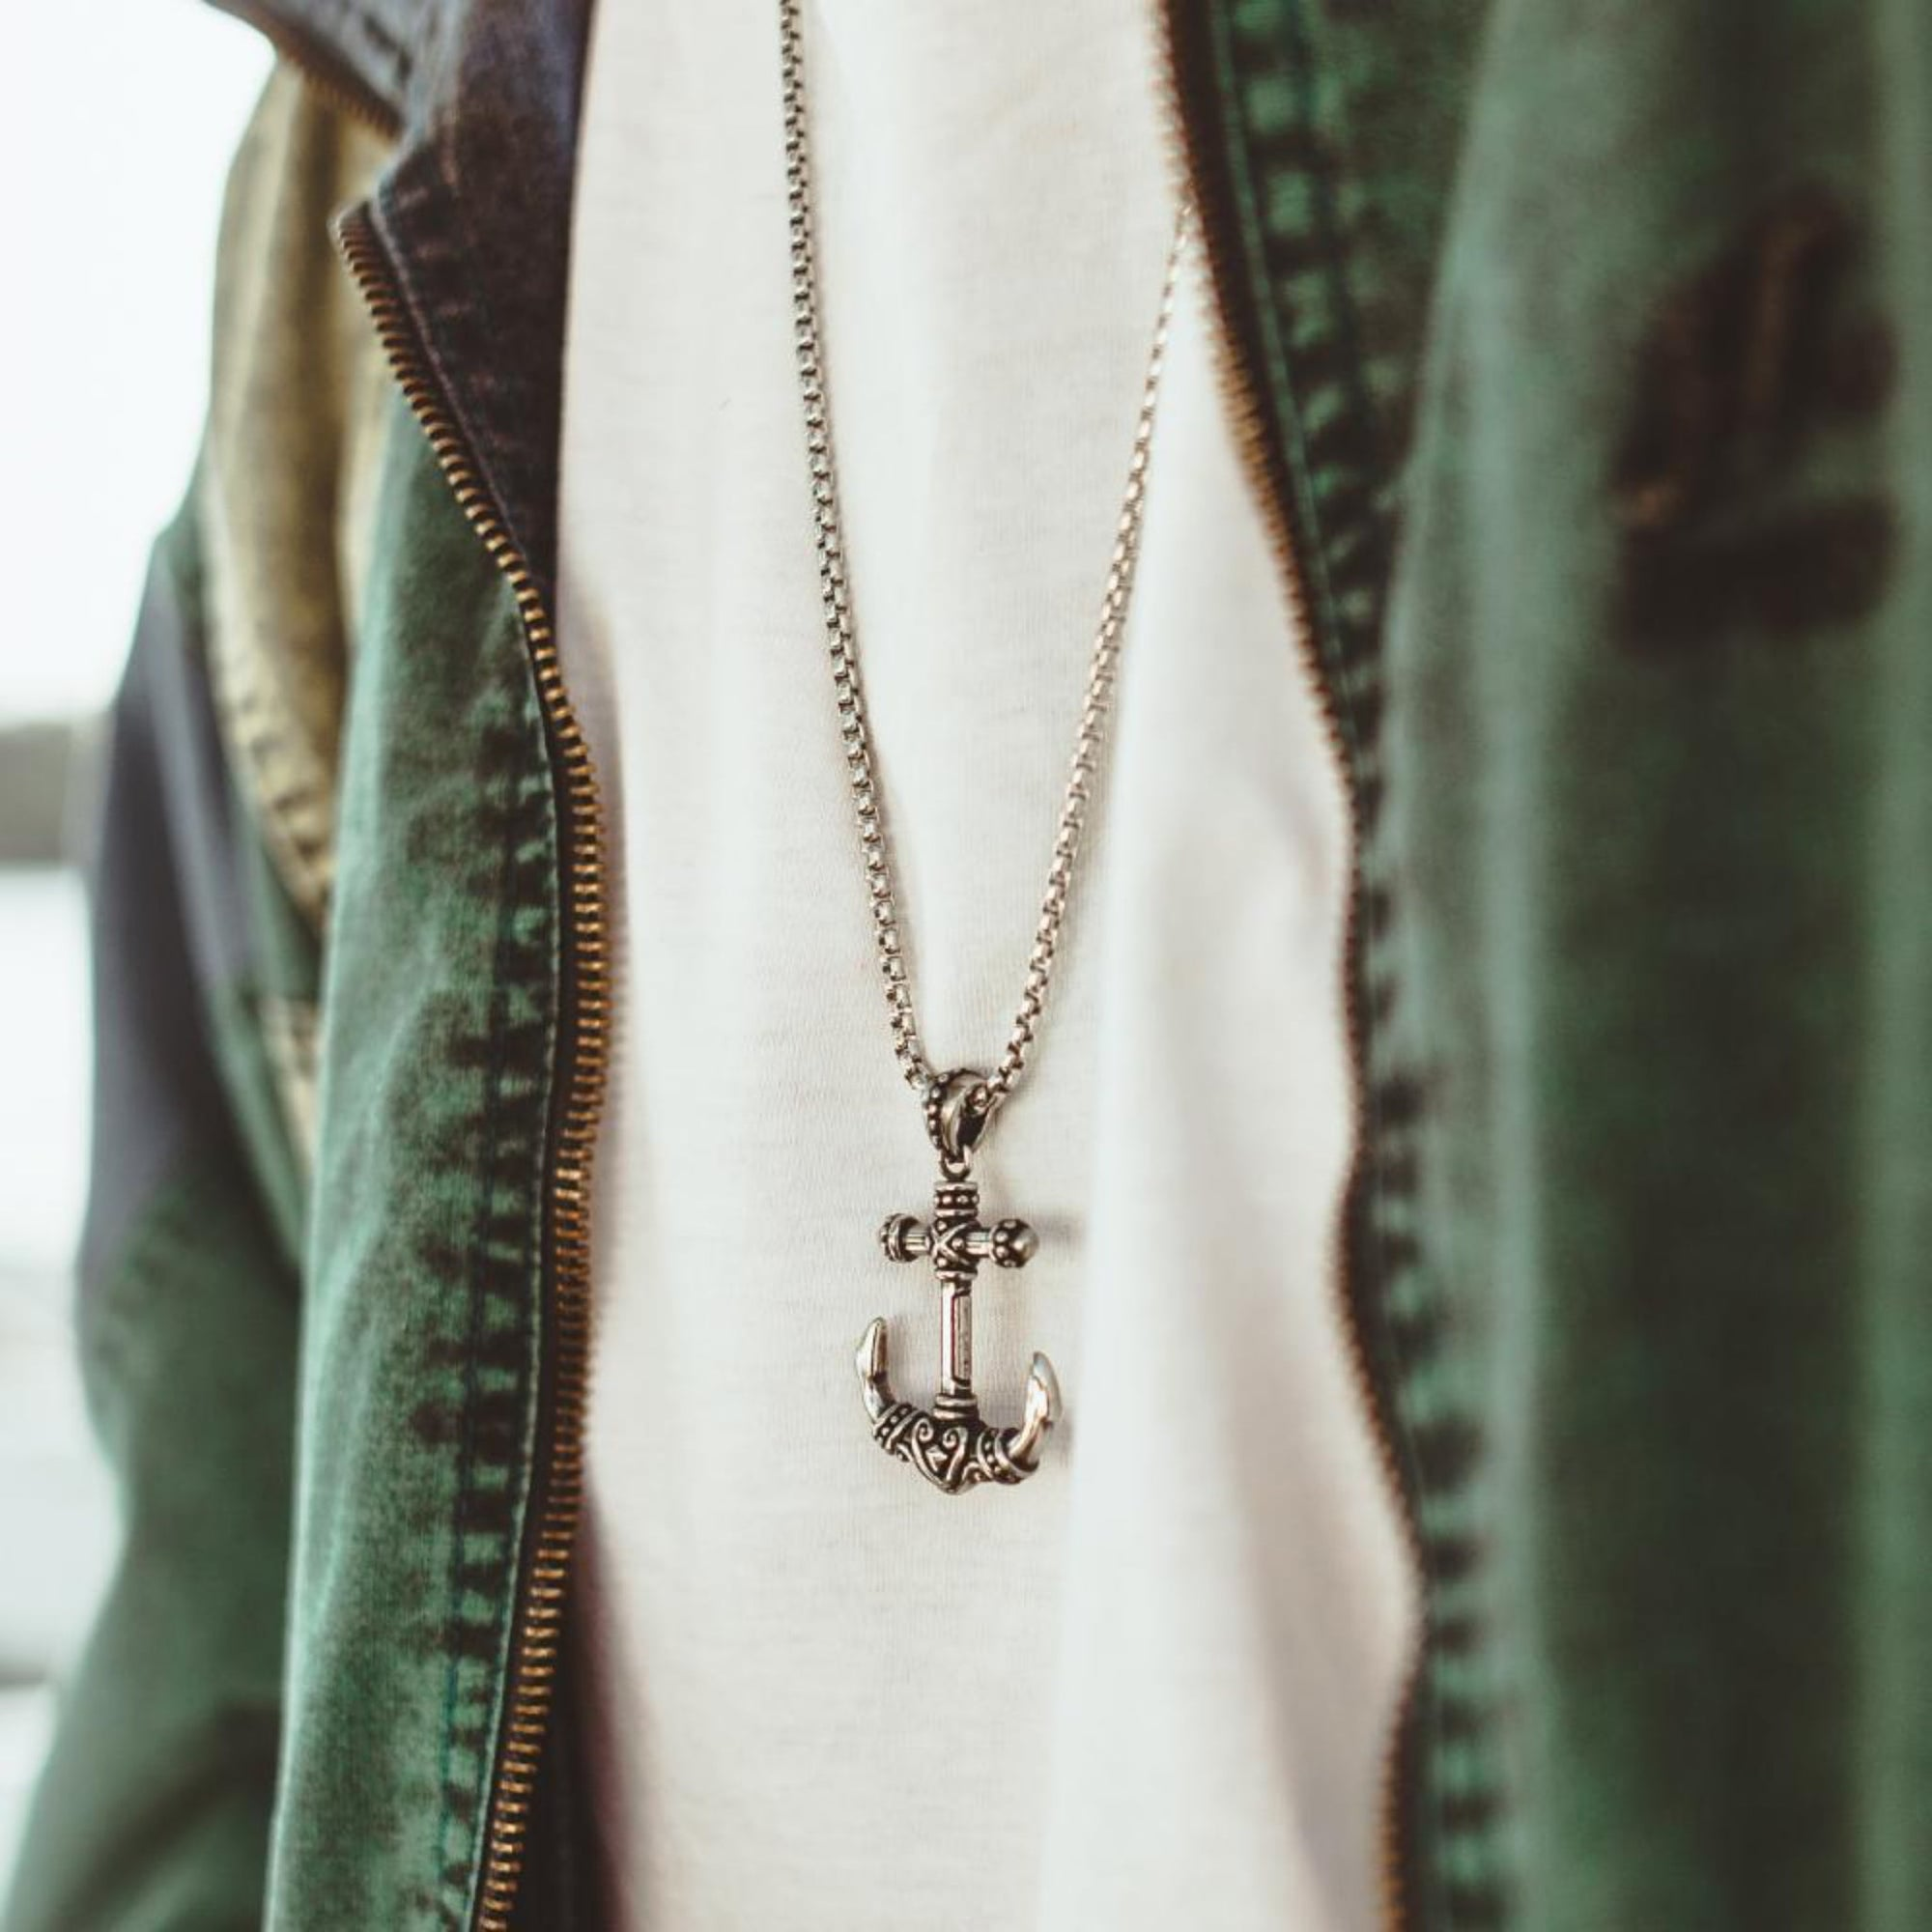 Mens' Steel Rebel Anchor Pendant with Chain at Arman's Jewellers Kitchener